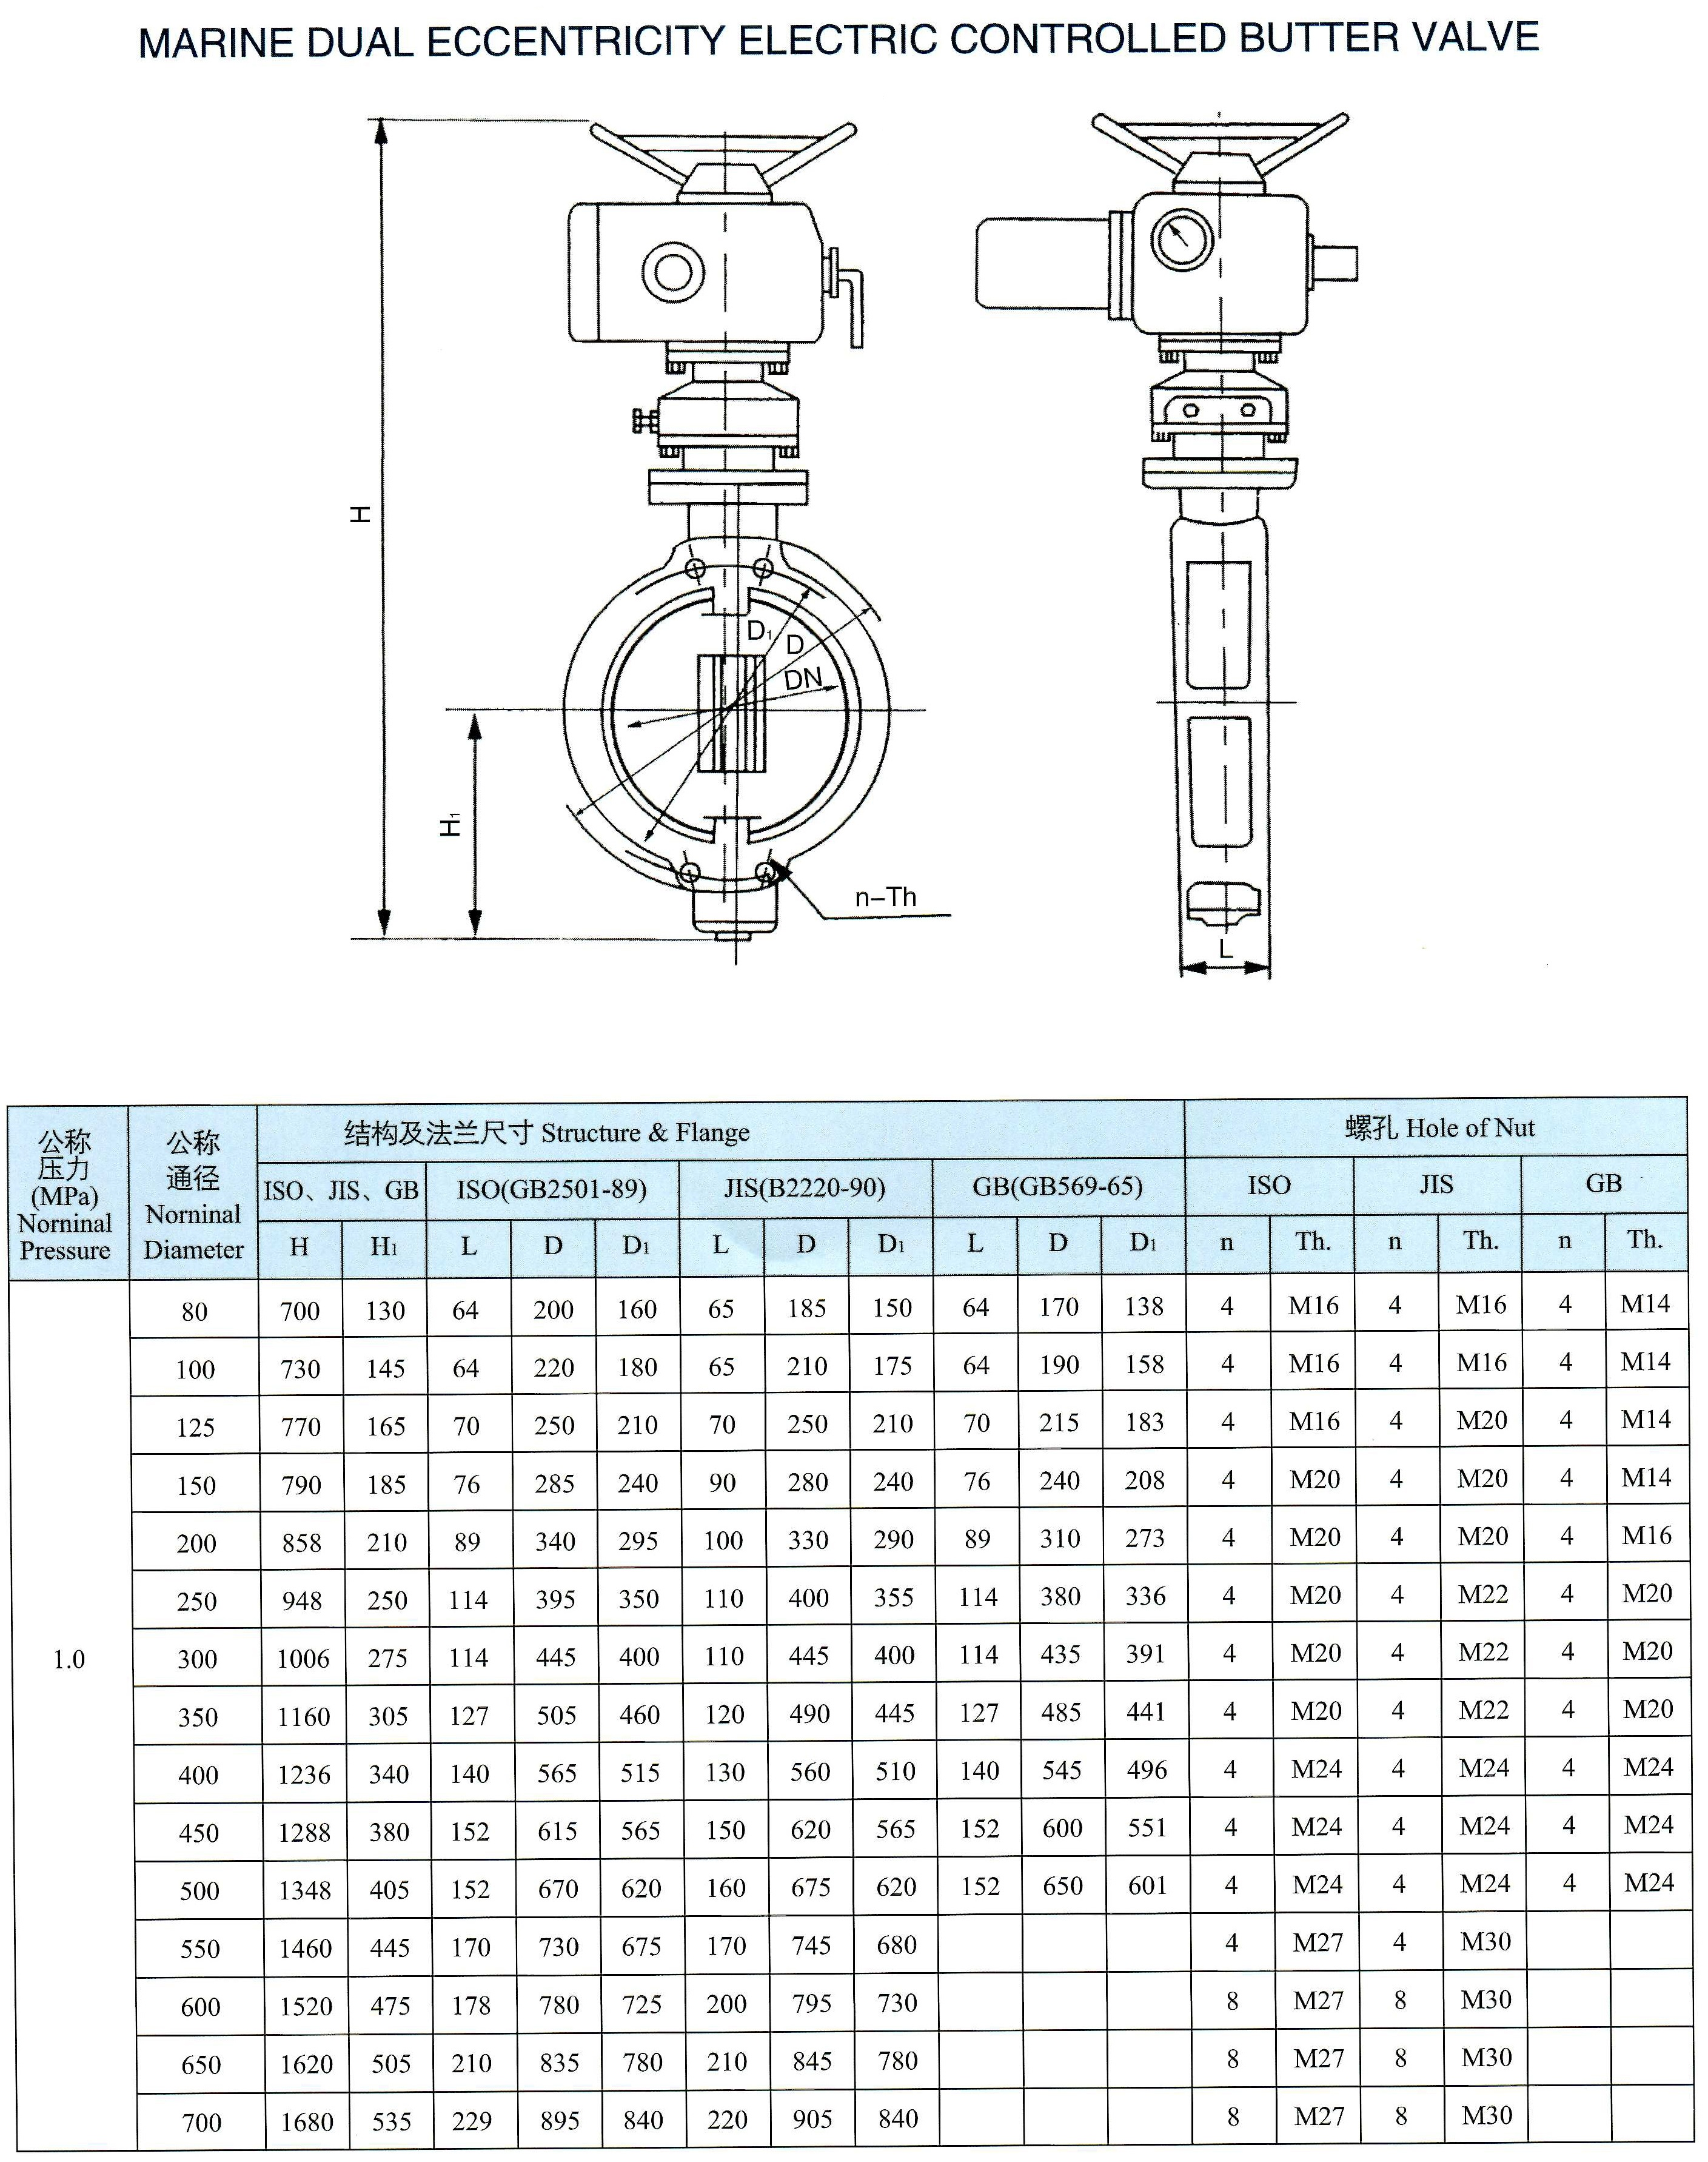 marine dual eccentricity electric-controlled butterfly valve(Type D)